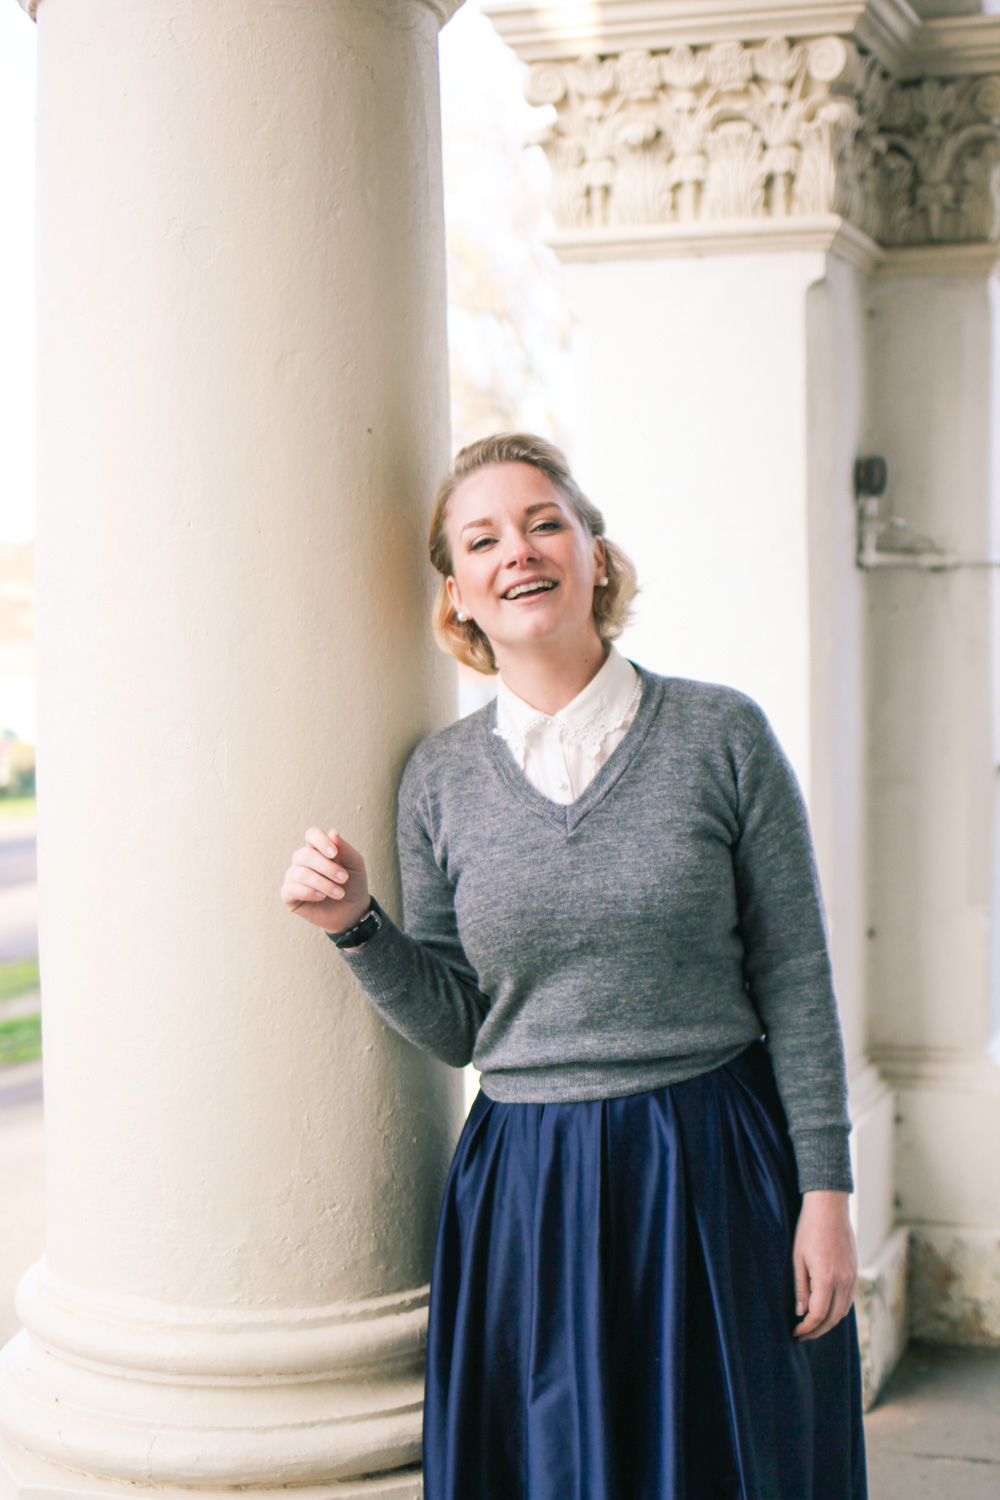 @findingfemme at Clunes and Maryborough in Review Australia navy midi skirt, Modcloth blouse and grey v-neck jumper.